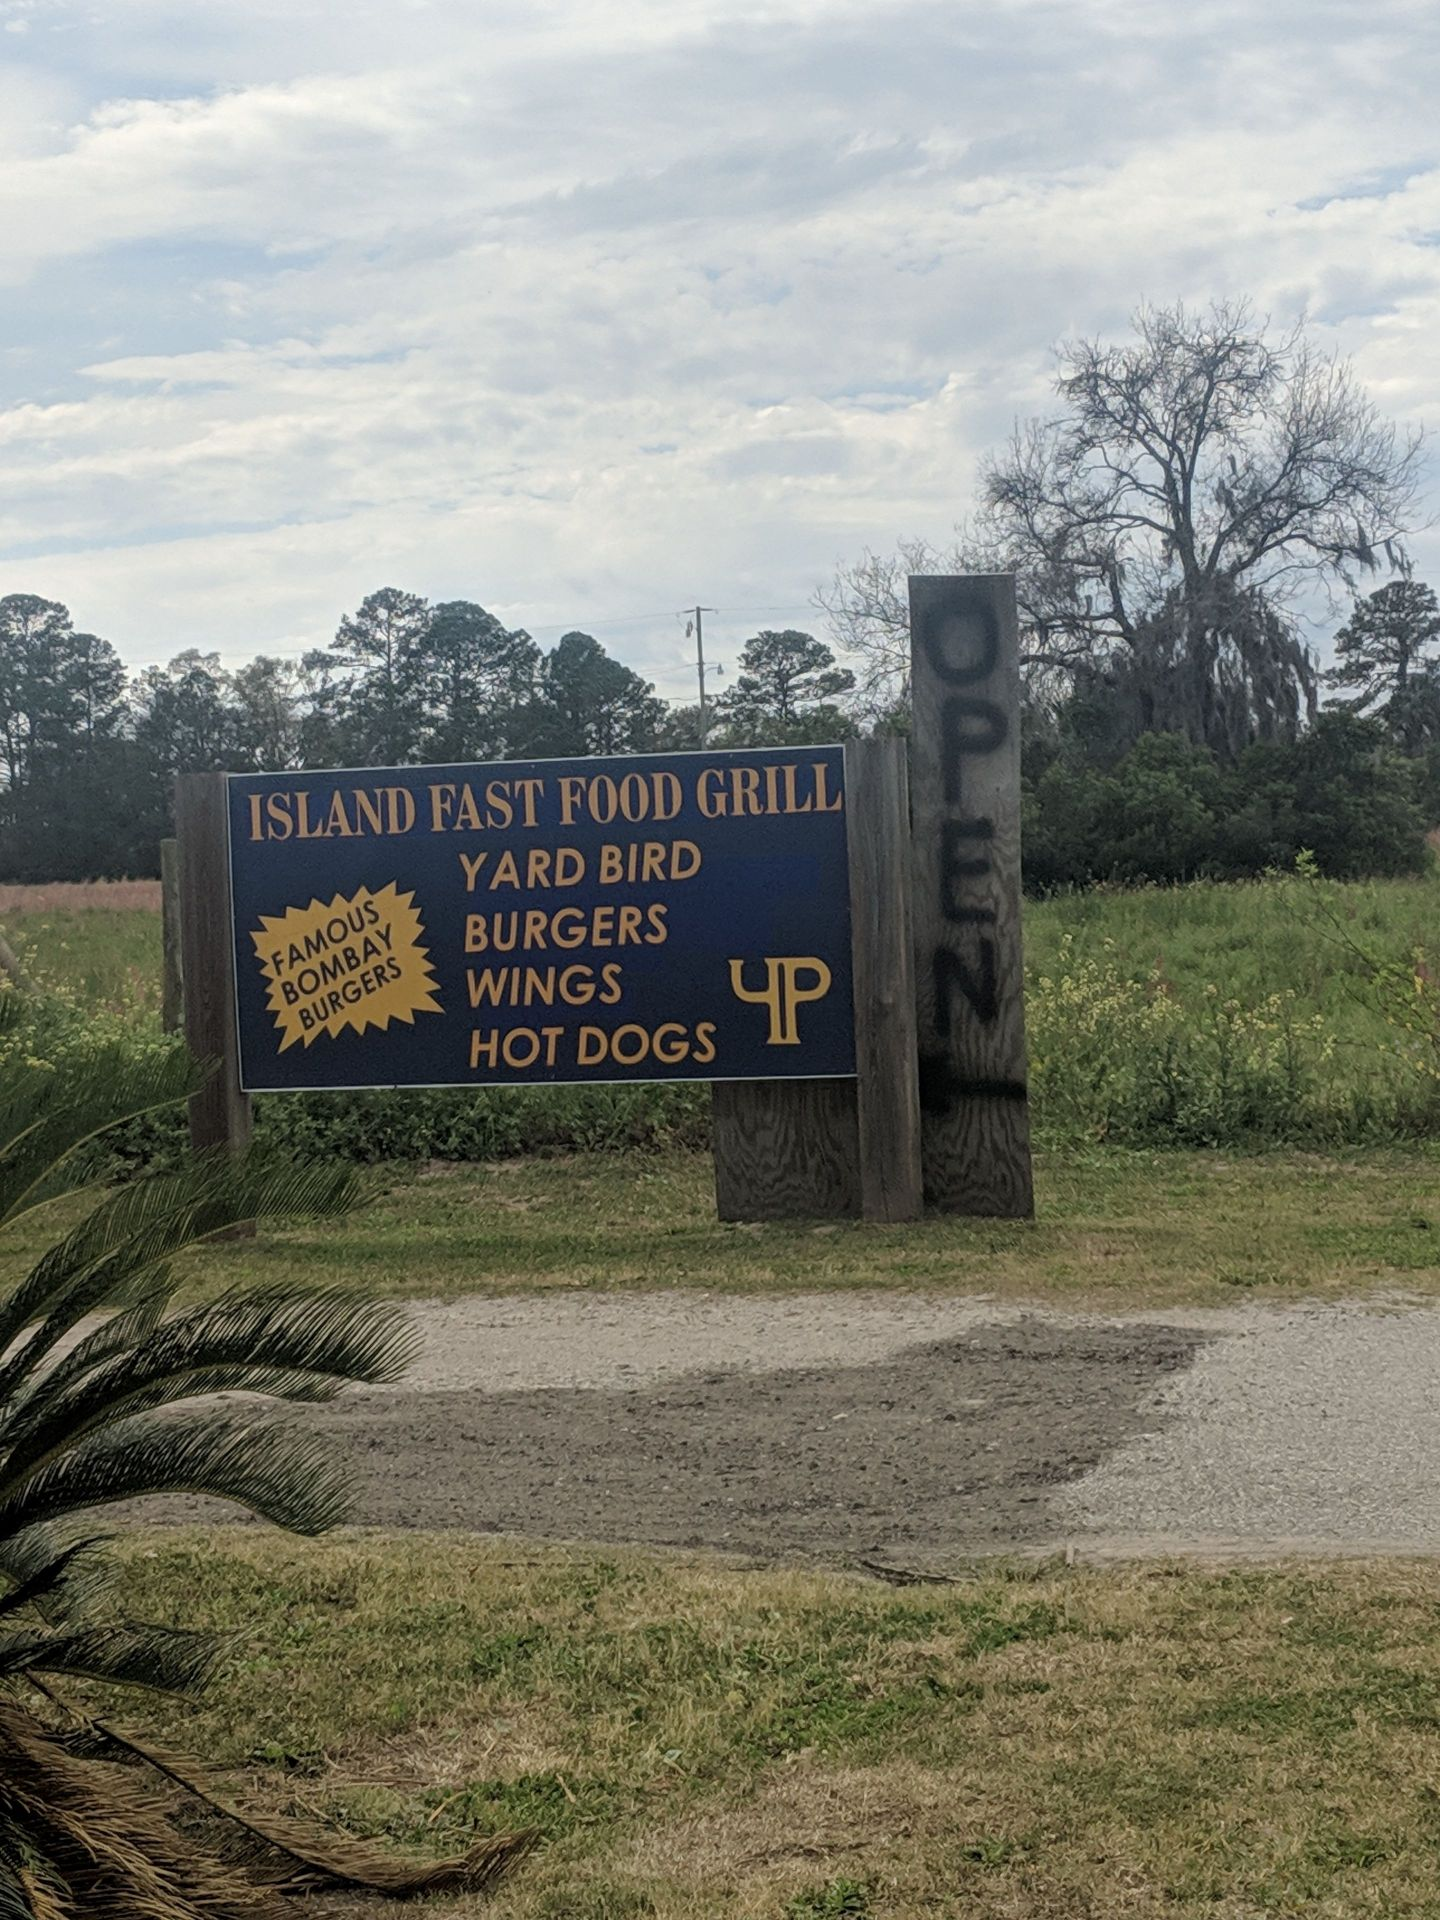 IMG_20190330_152330 St. Helena Island, SC Foodie Experience: Island Fast Food Grill